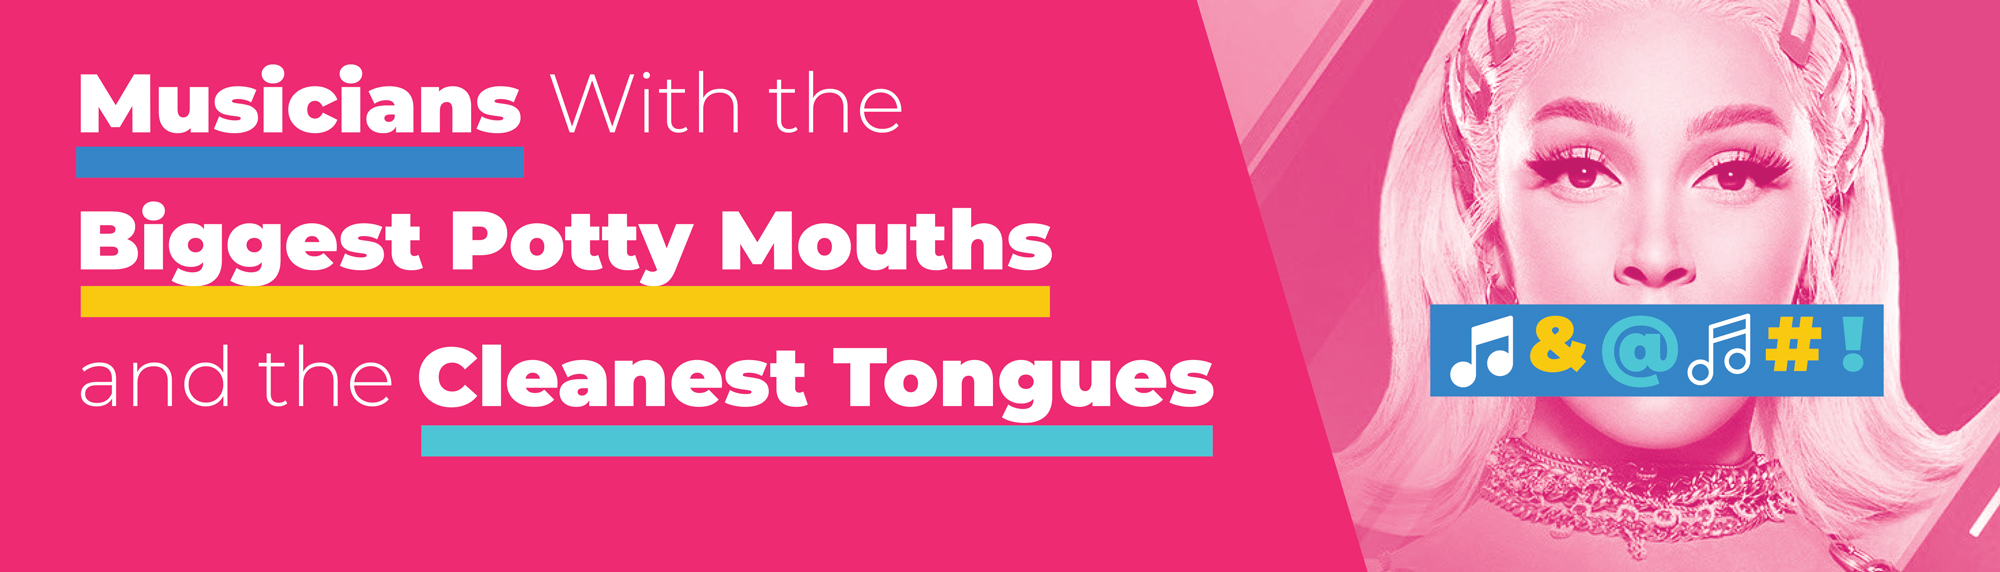 Musicians With the Biggest Potty Mouths and the Cleanest Tongues